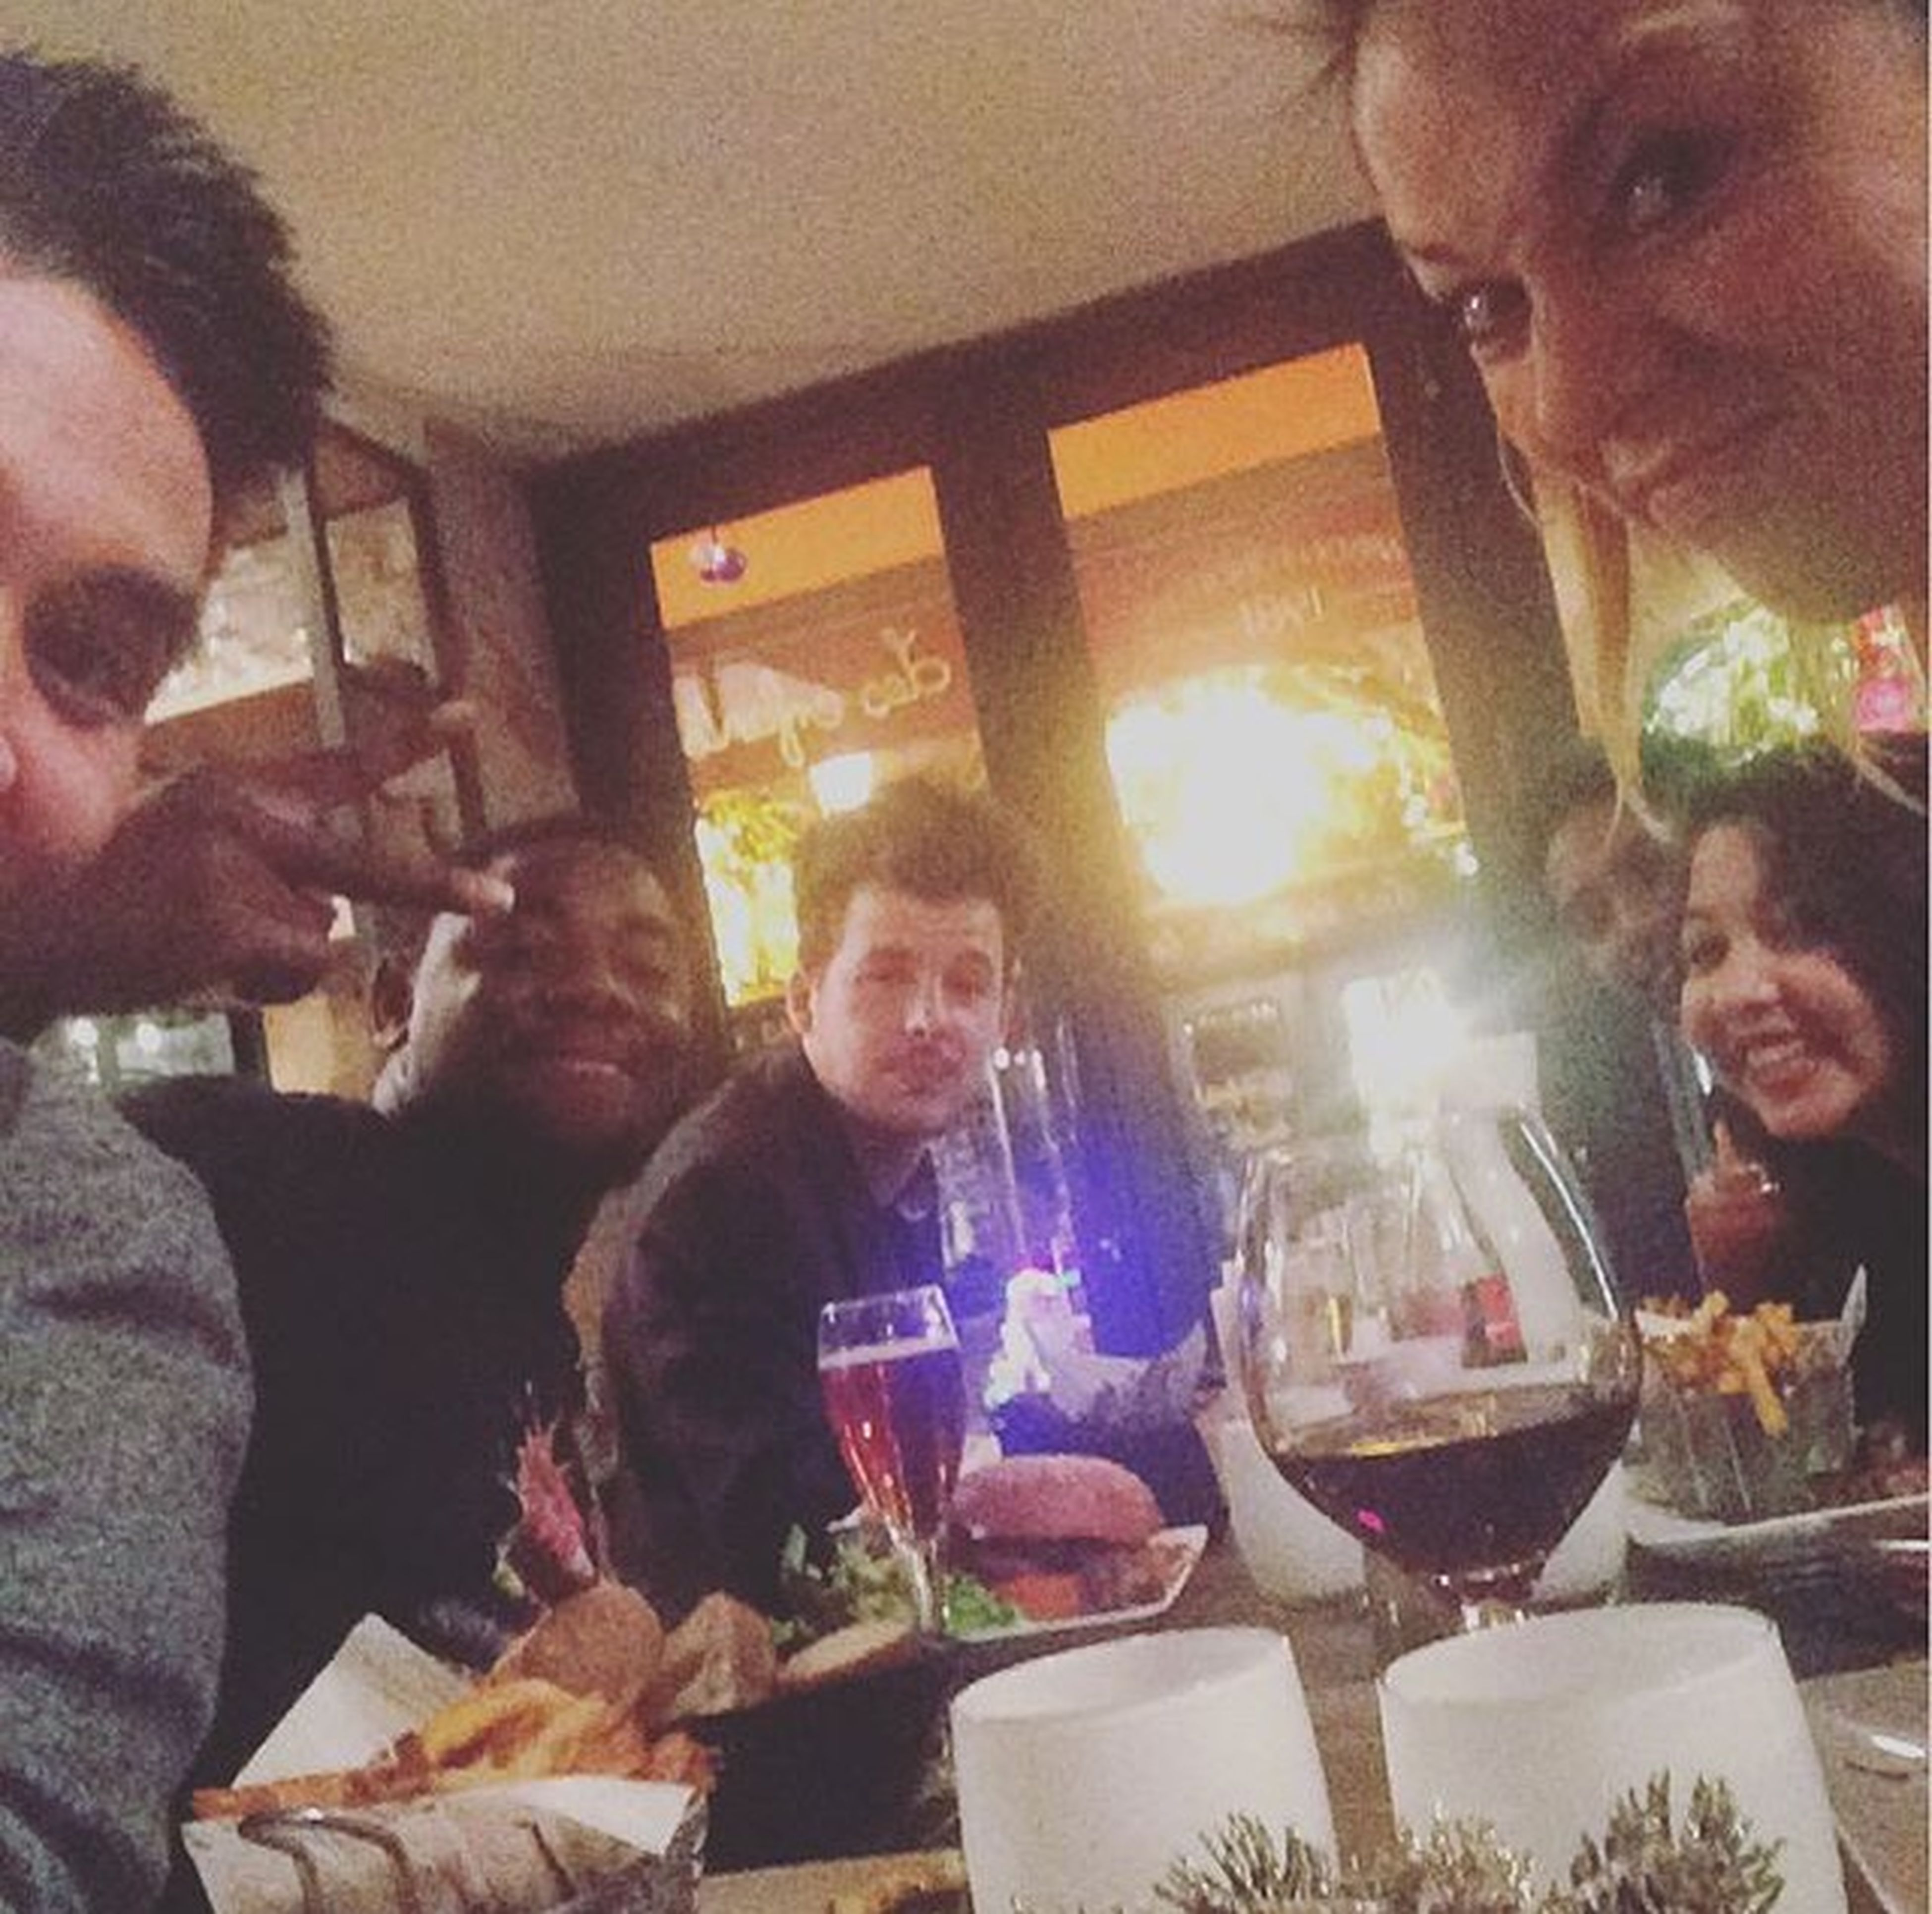 Mes amis, ma famille. Friends Eating Enjoying Life Happy